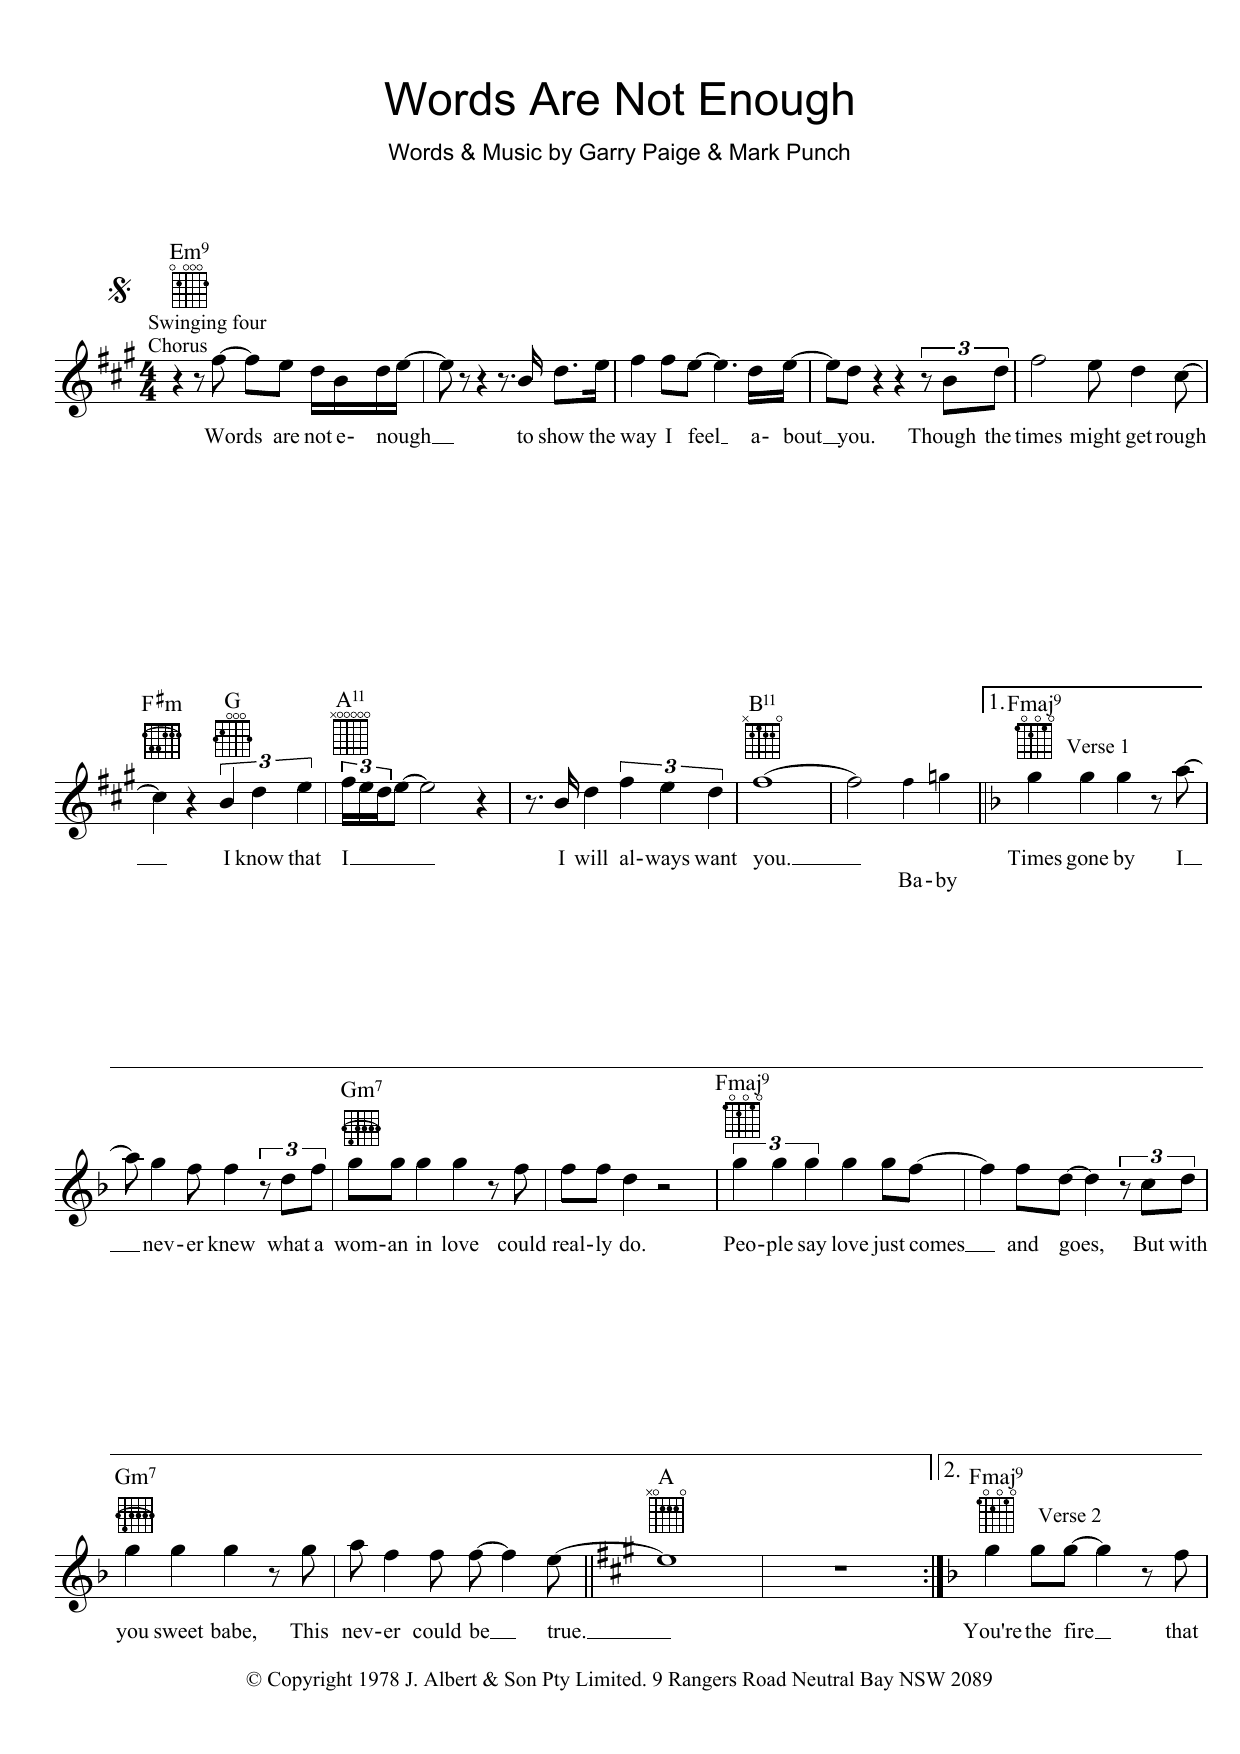 Words Are Not Enough Sheet Music